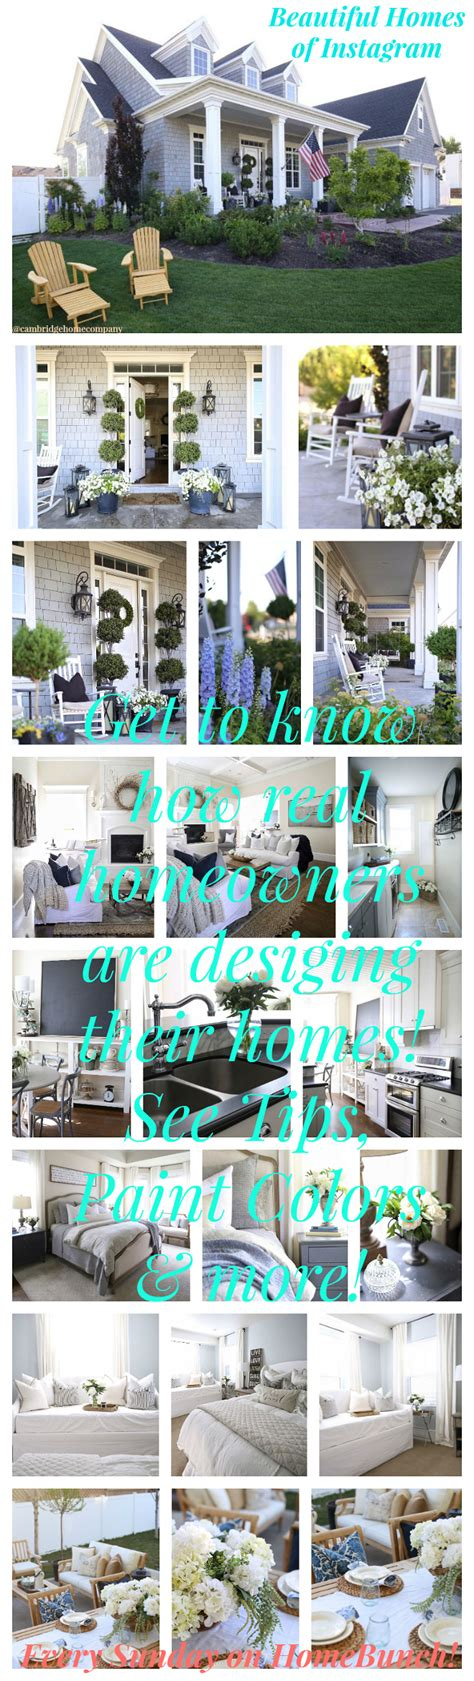 house beautiful instagram beautiful homes of instagram home bunch interior design